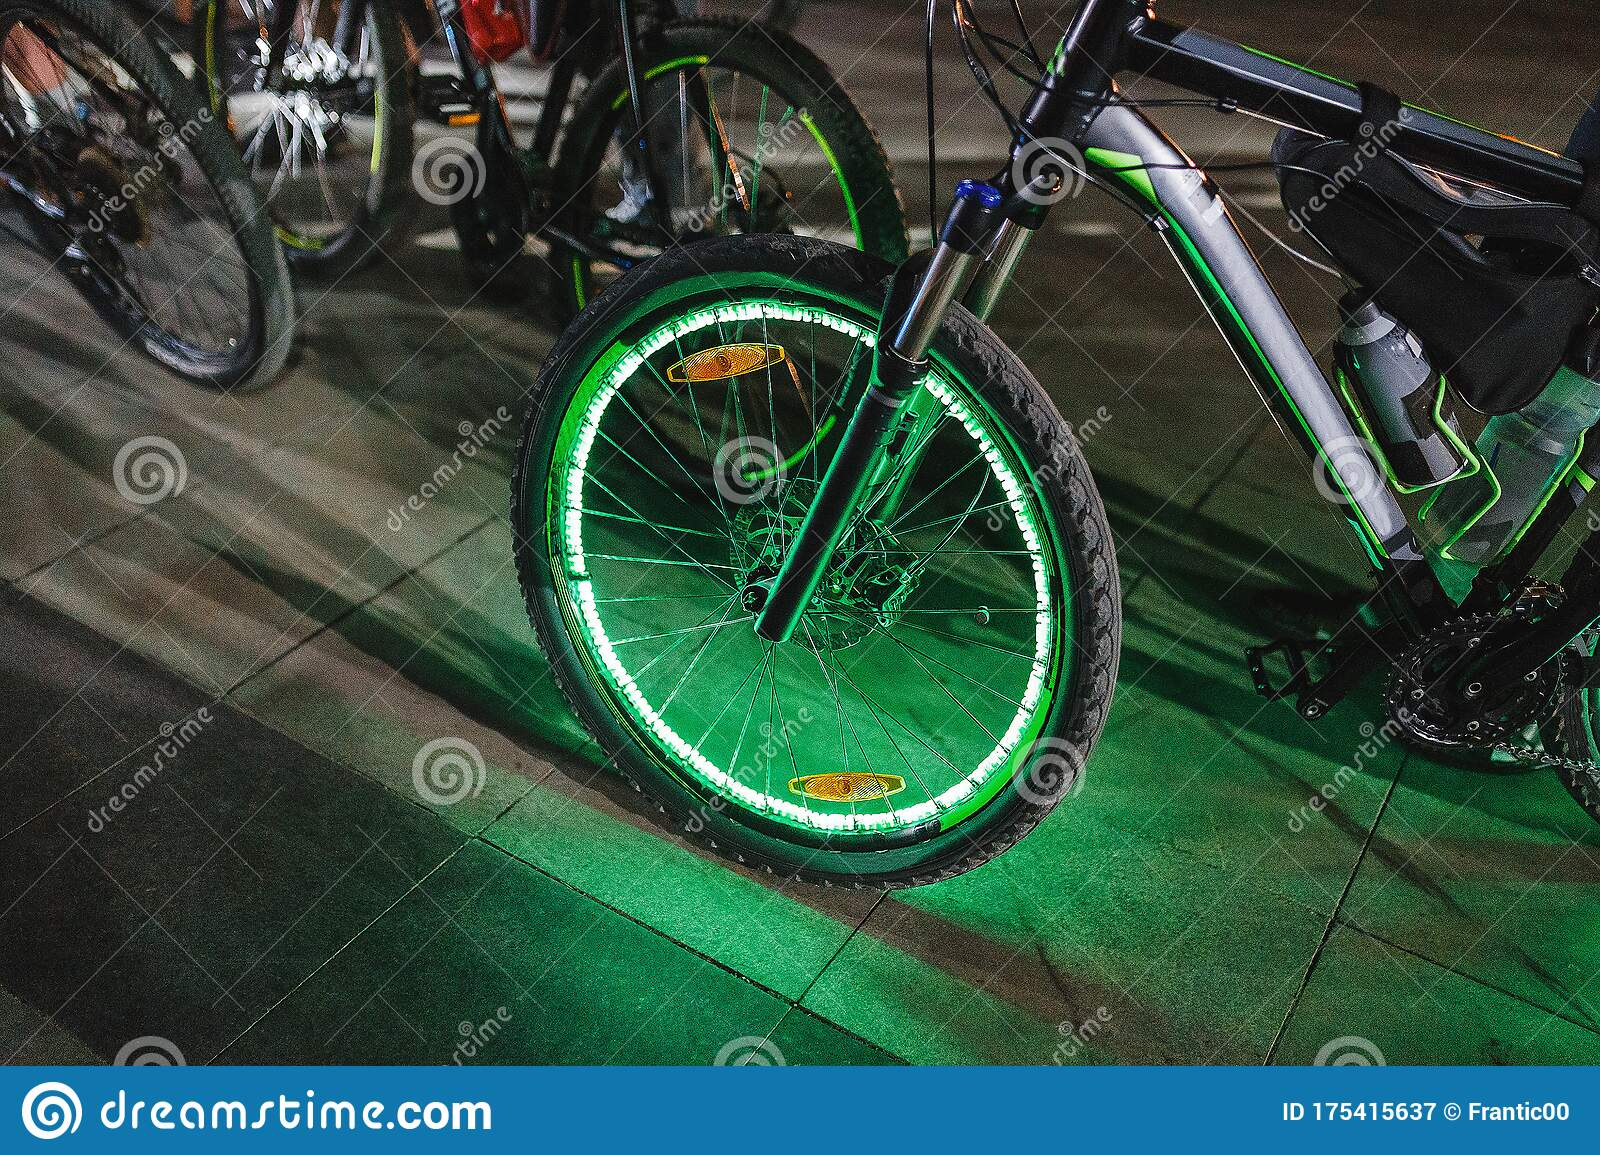 Neon Lights And Illumination On The Wheel Of A Bicycle At Night The Concept Of Safety Of Traffic In The Dark Stock Image Image Of Concept Colorful 175415637 Traffic light bicycle night glow neon